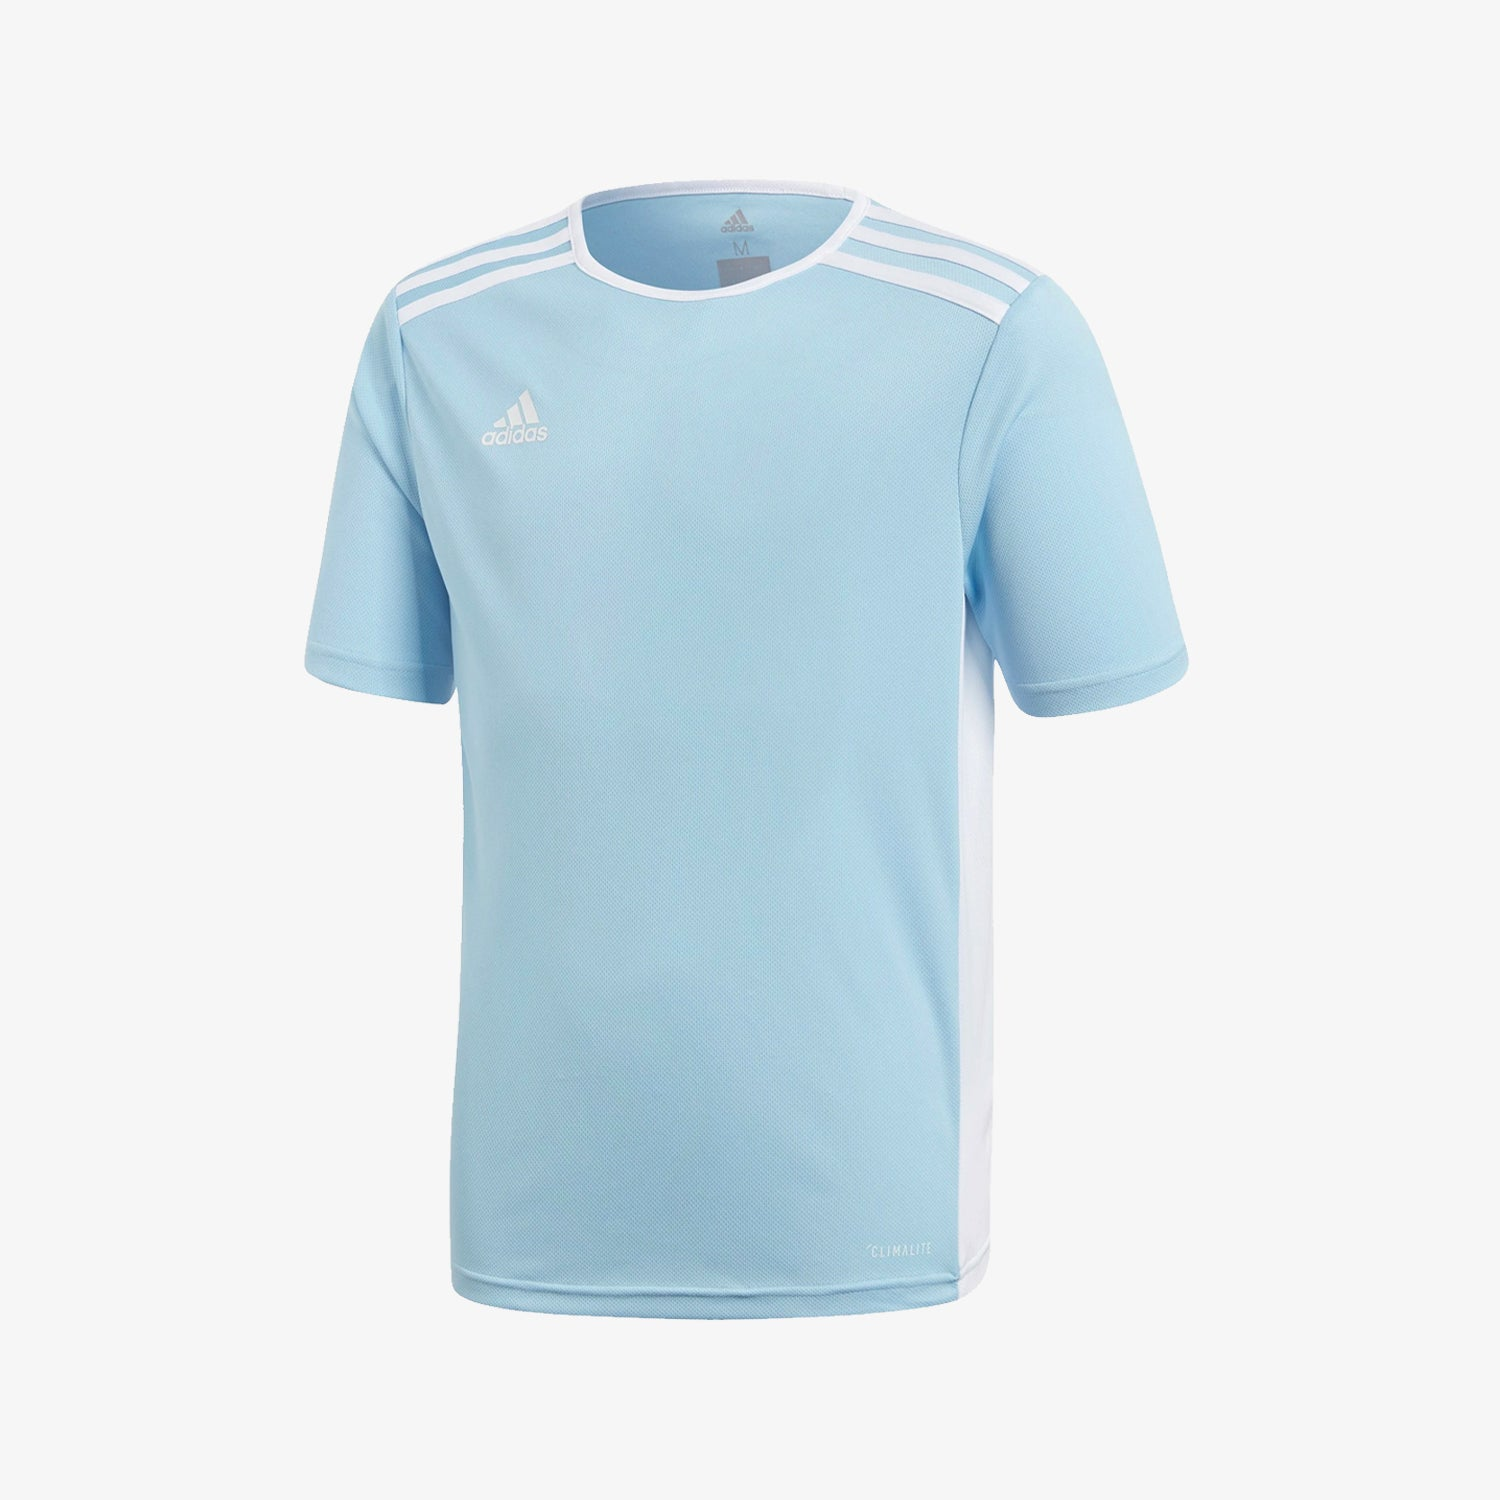 Youth Entrada 18 jersey - Clear Blue - Niky's Sports